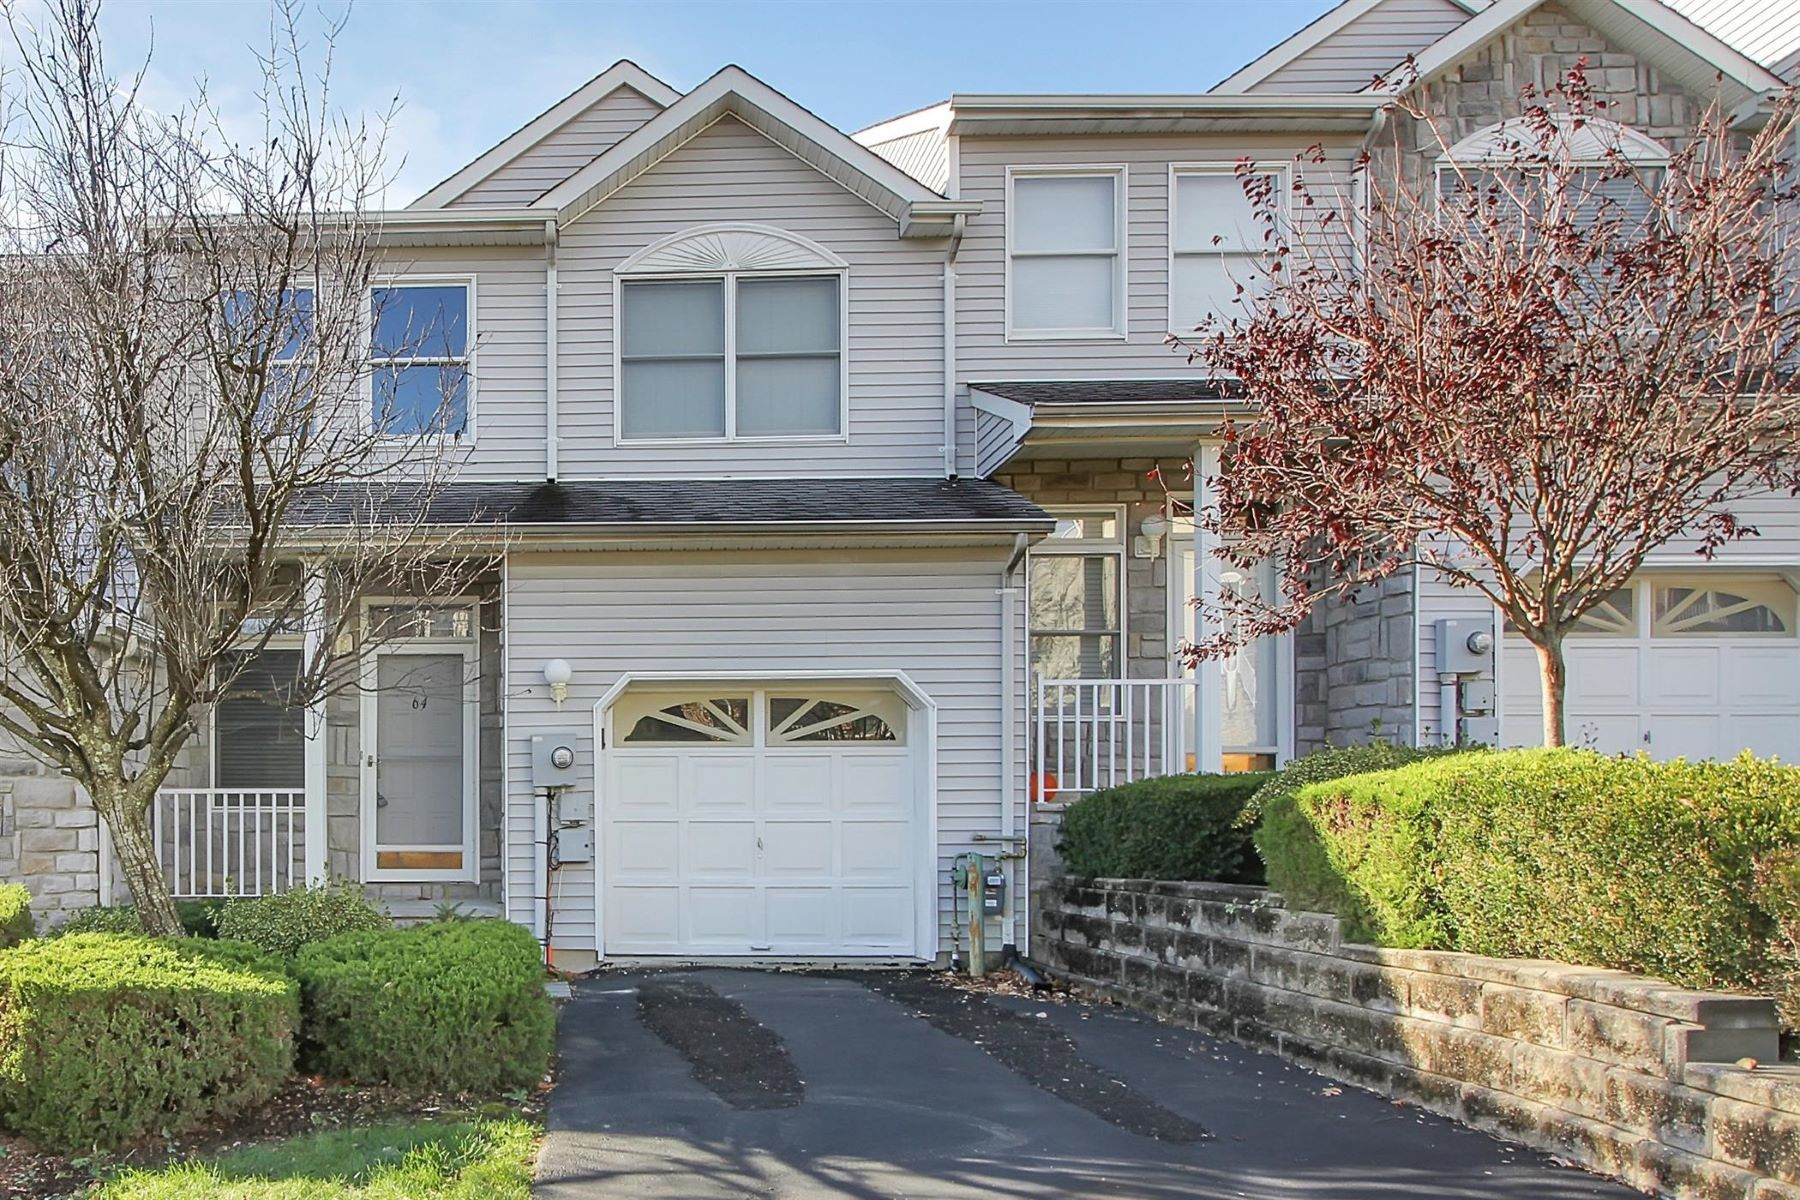 Townhouse for Sale at Inviting Townhouse 64 Summerhill Drive, Morris Plains, New Jersey 07950 United States